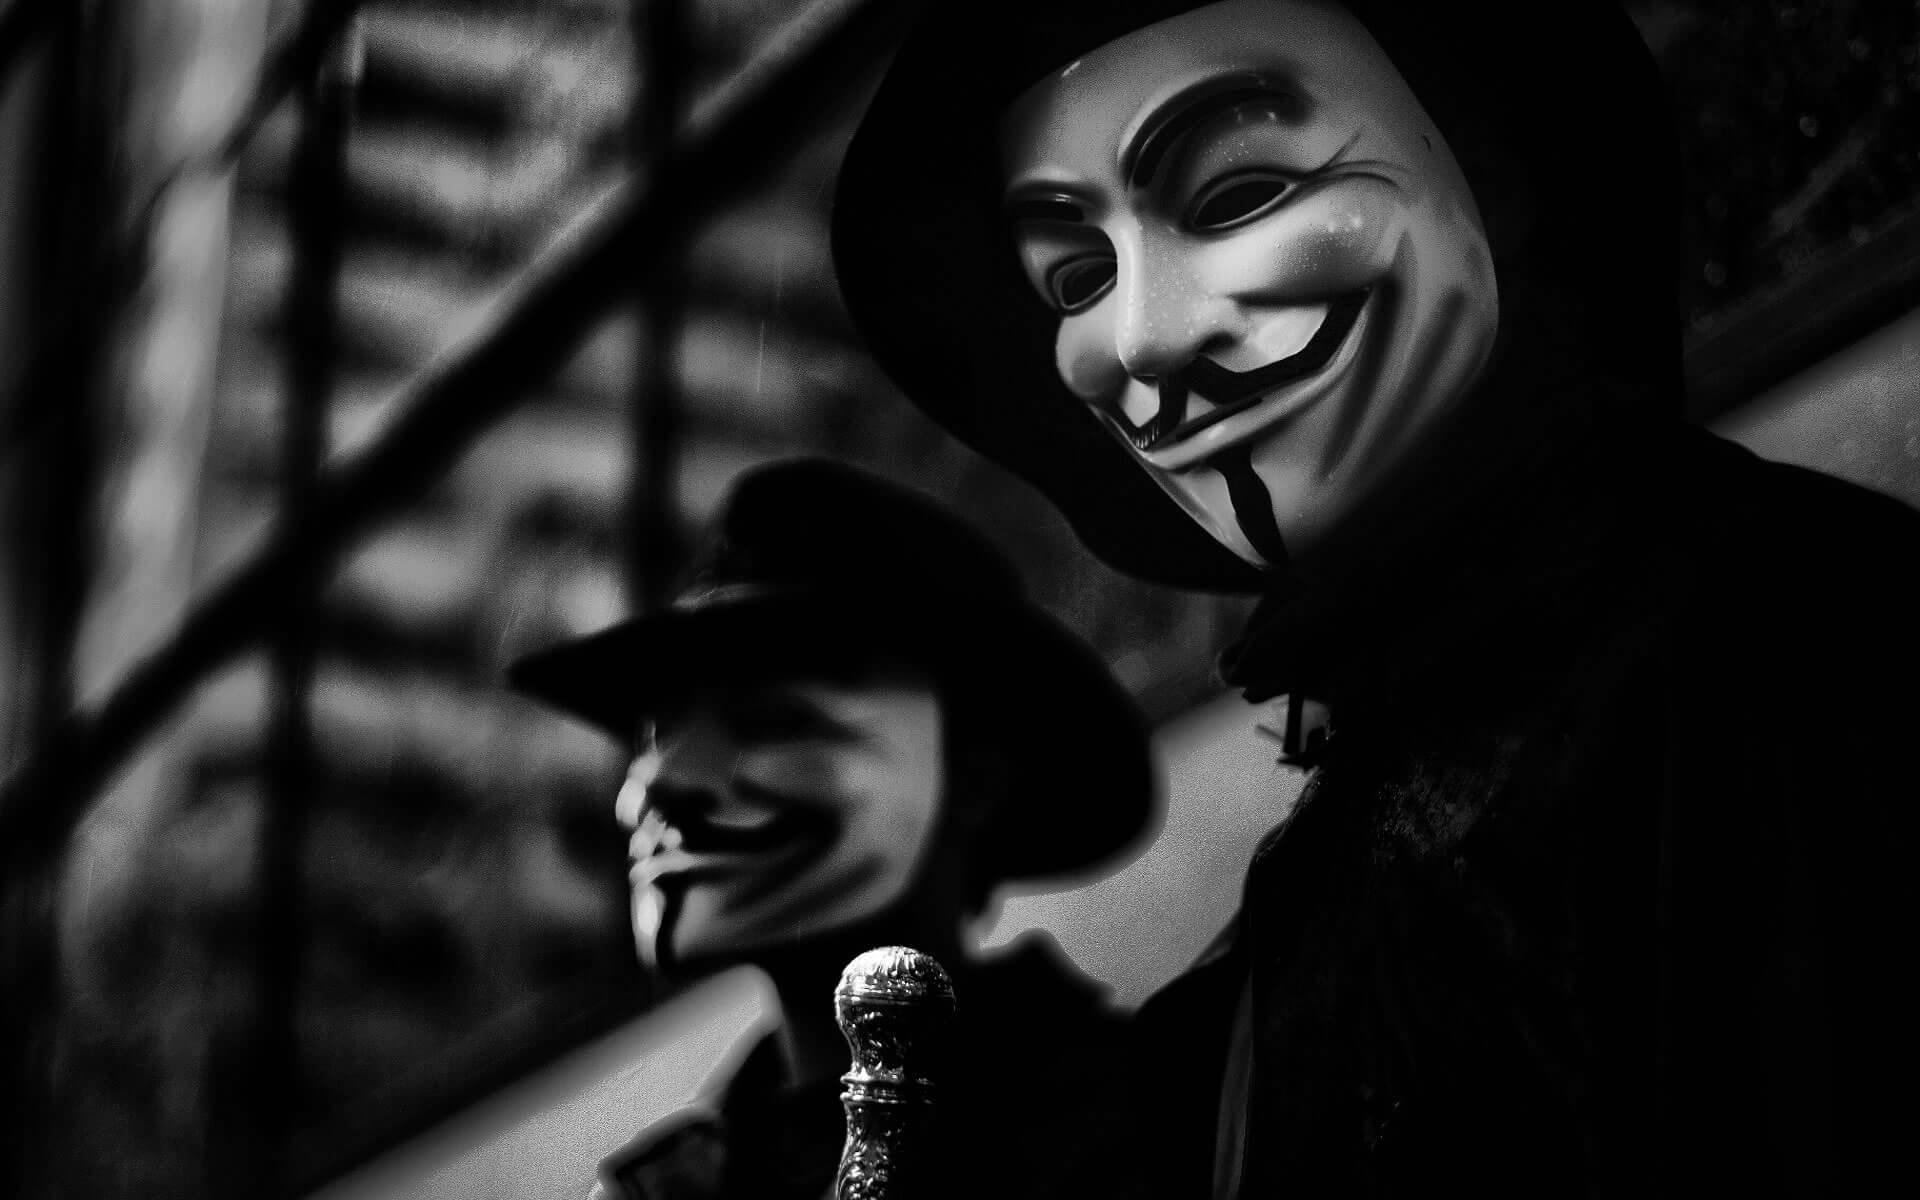 Anonymous took the hacktivism community with them when they died